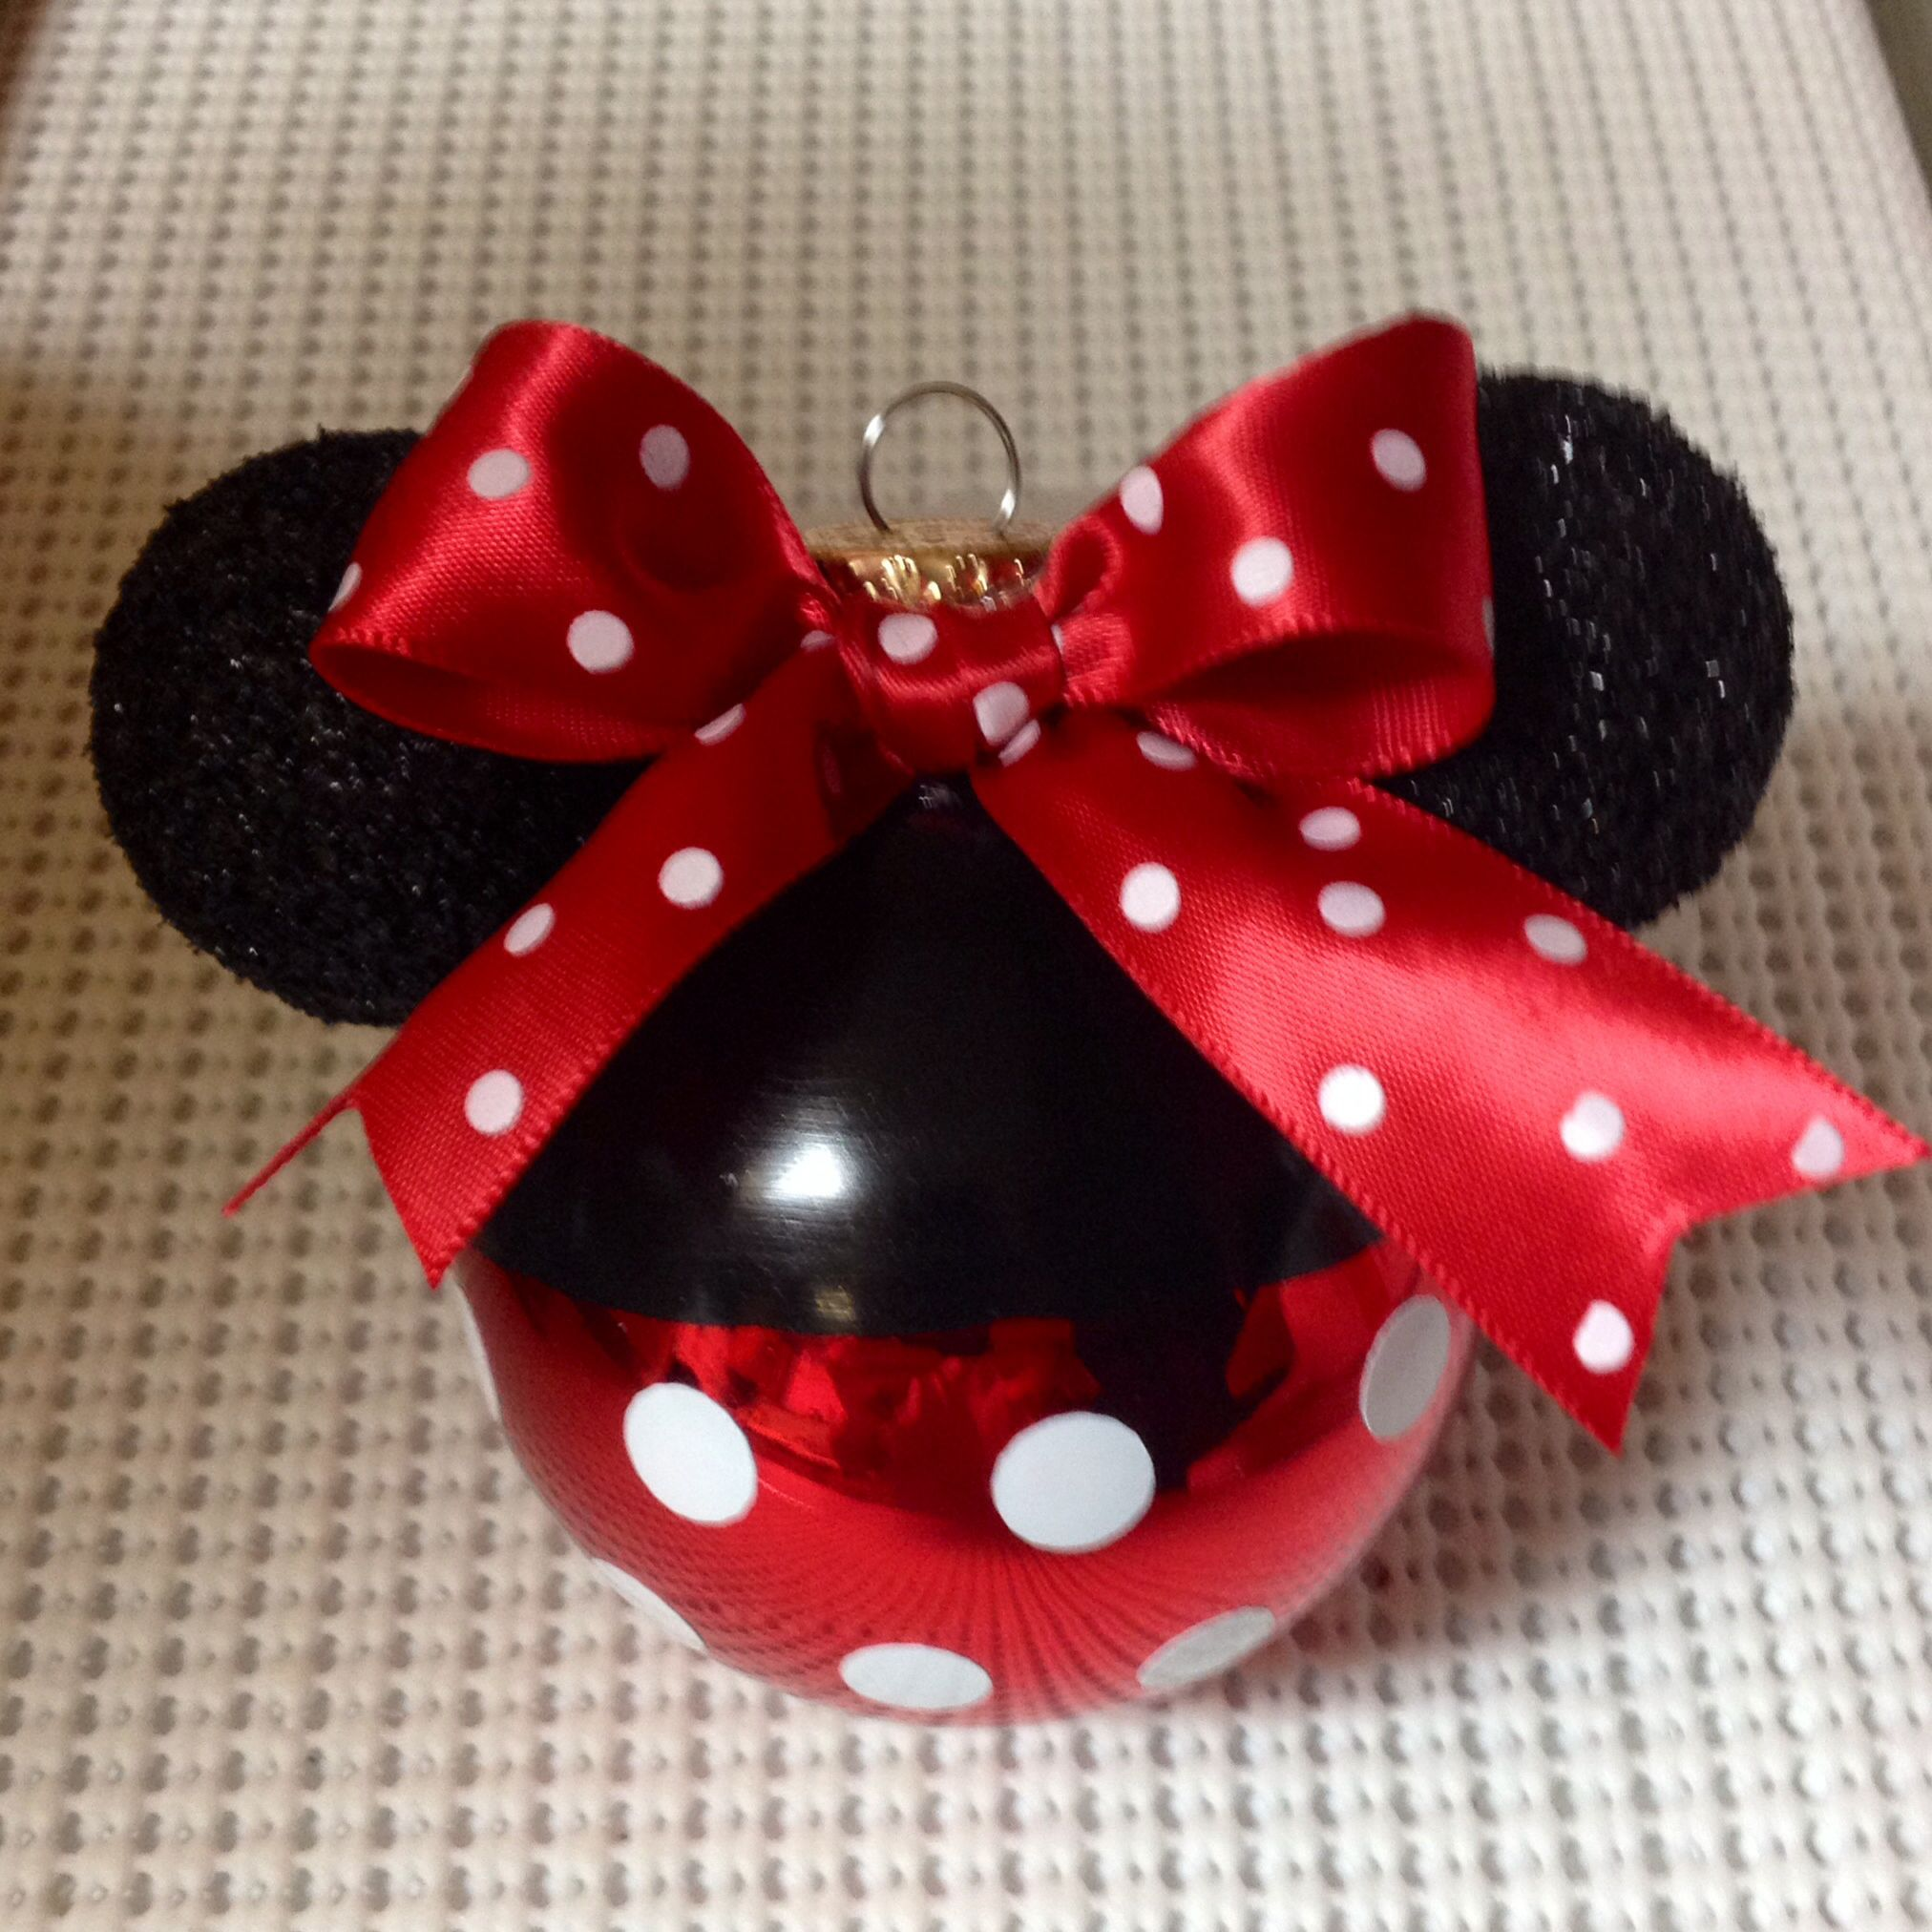 My 1st Minnie Mouse Ornament I Made For My Disney Tree Disney Christmas Ornaments Disney Christmas Tree Disney Christmas Decorations